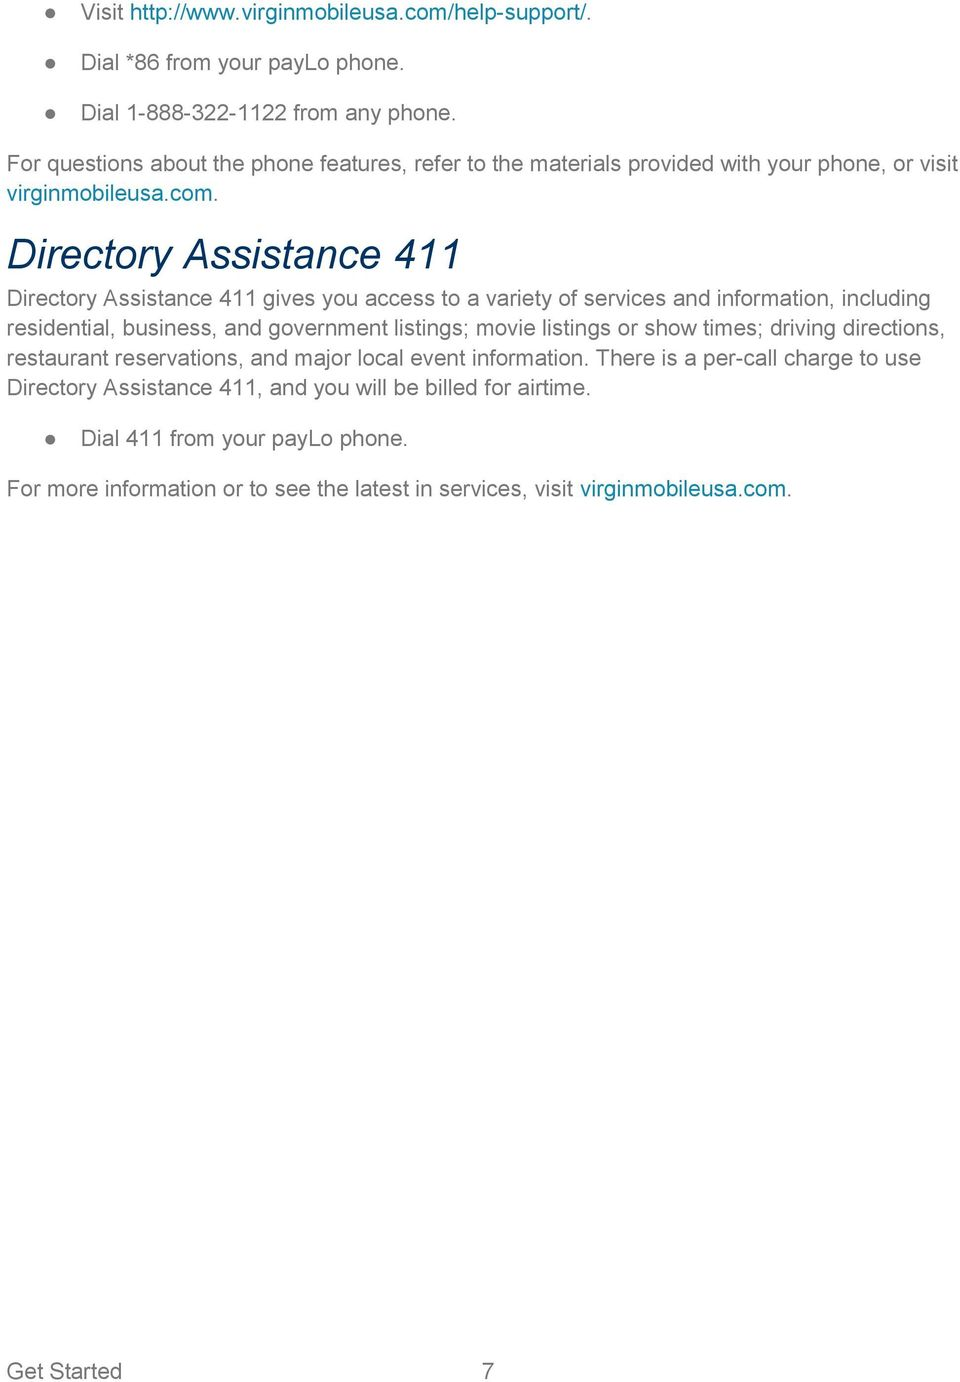 Directory Assistance 411 Directory Assistance 411 gives you access to a variety of services and information, including residential, business, and government listings; movie listings or